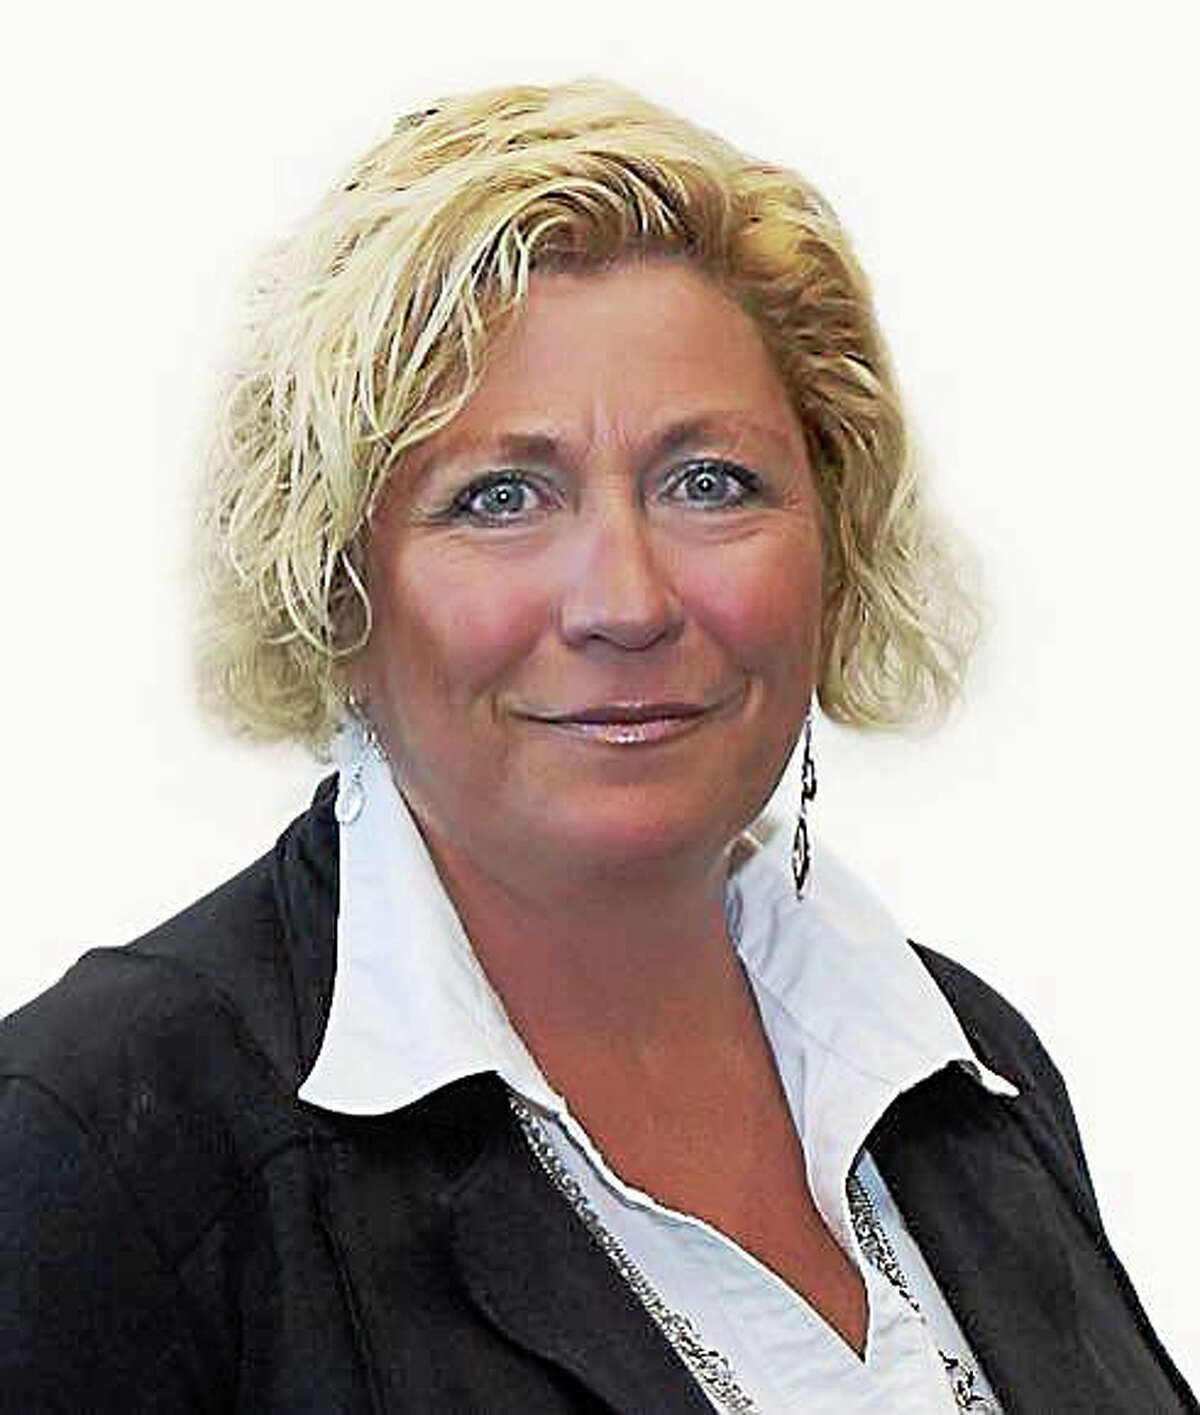 Republican Lindsay Fralick is running for Middletown Common Council.